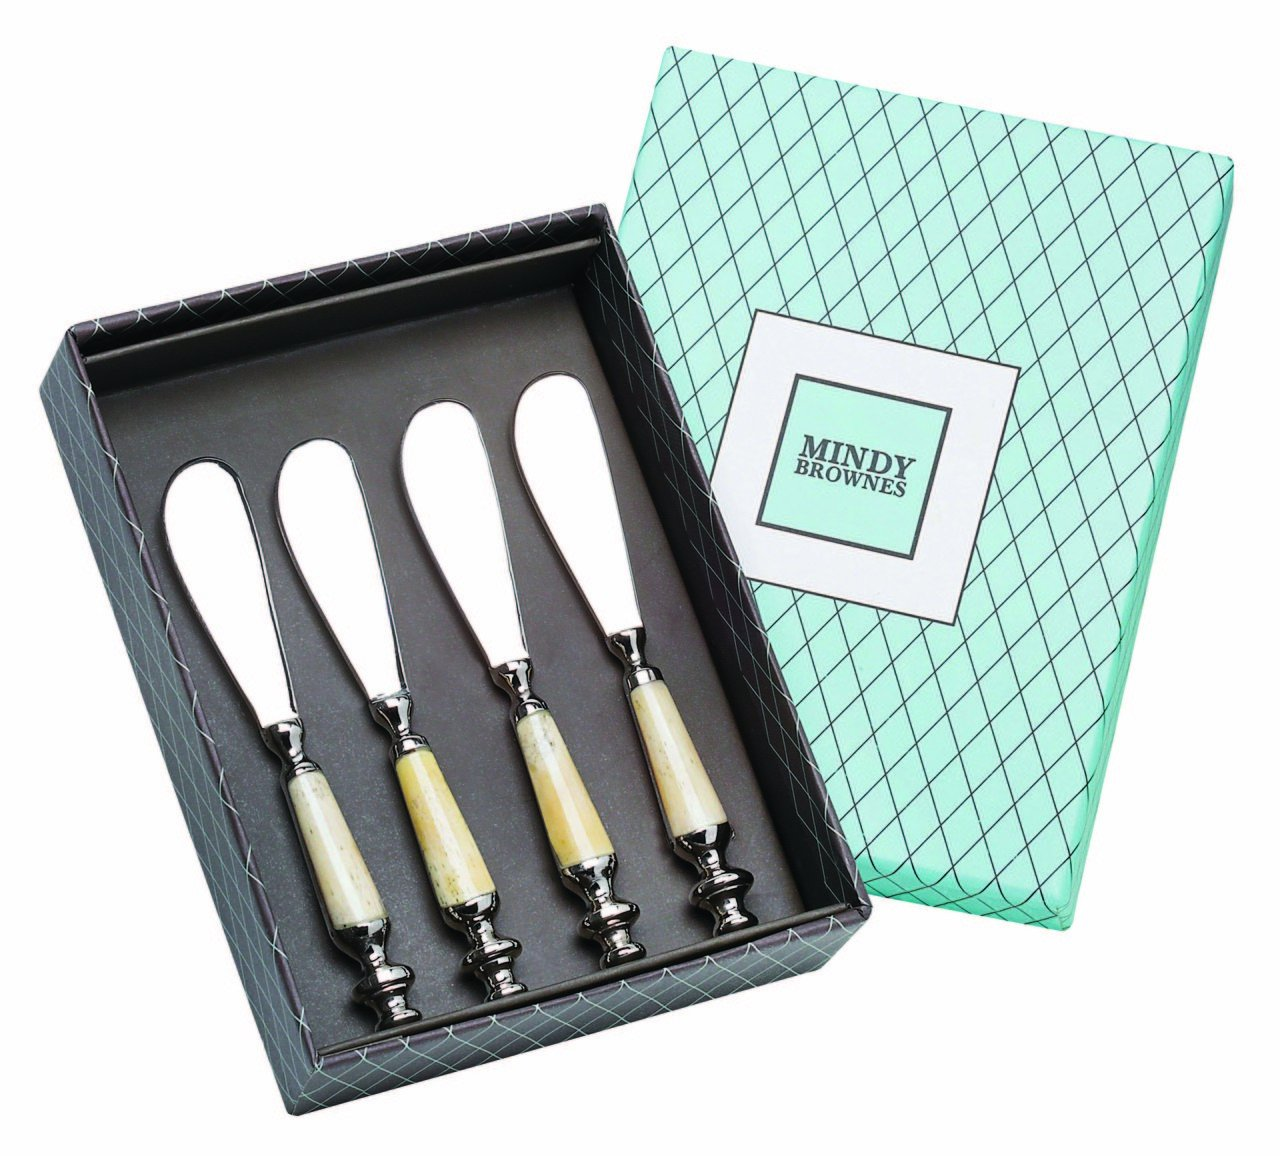 'Royal Spreader Set of Four' - a delightful set of four Stainless Steel spreaders or butter knives with bone handles Genesis